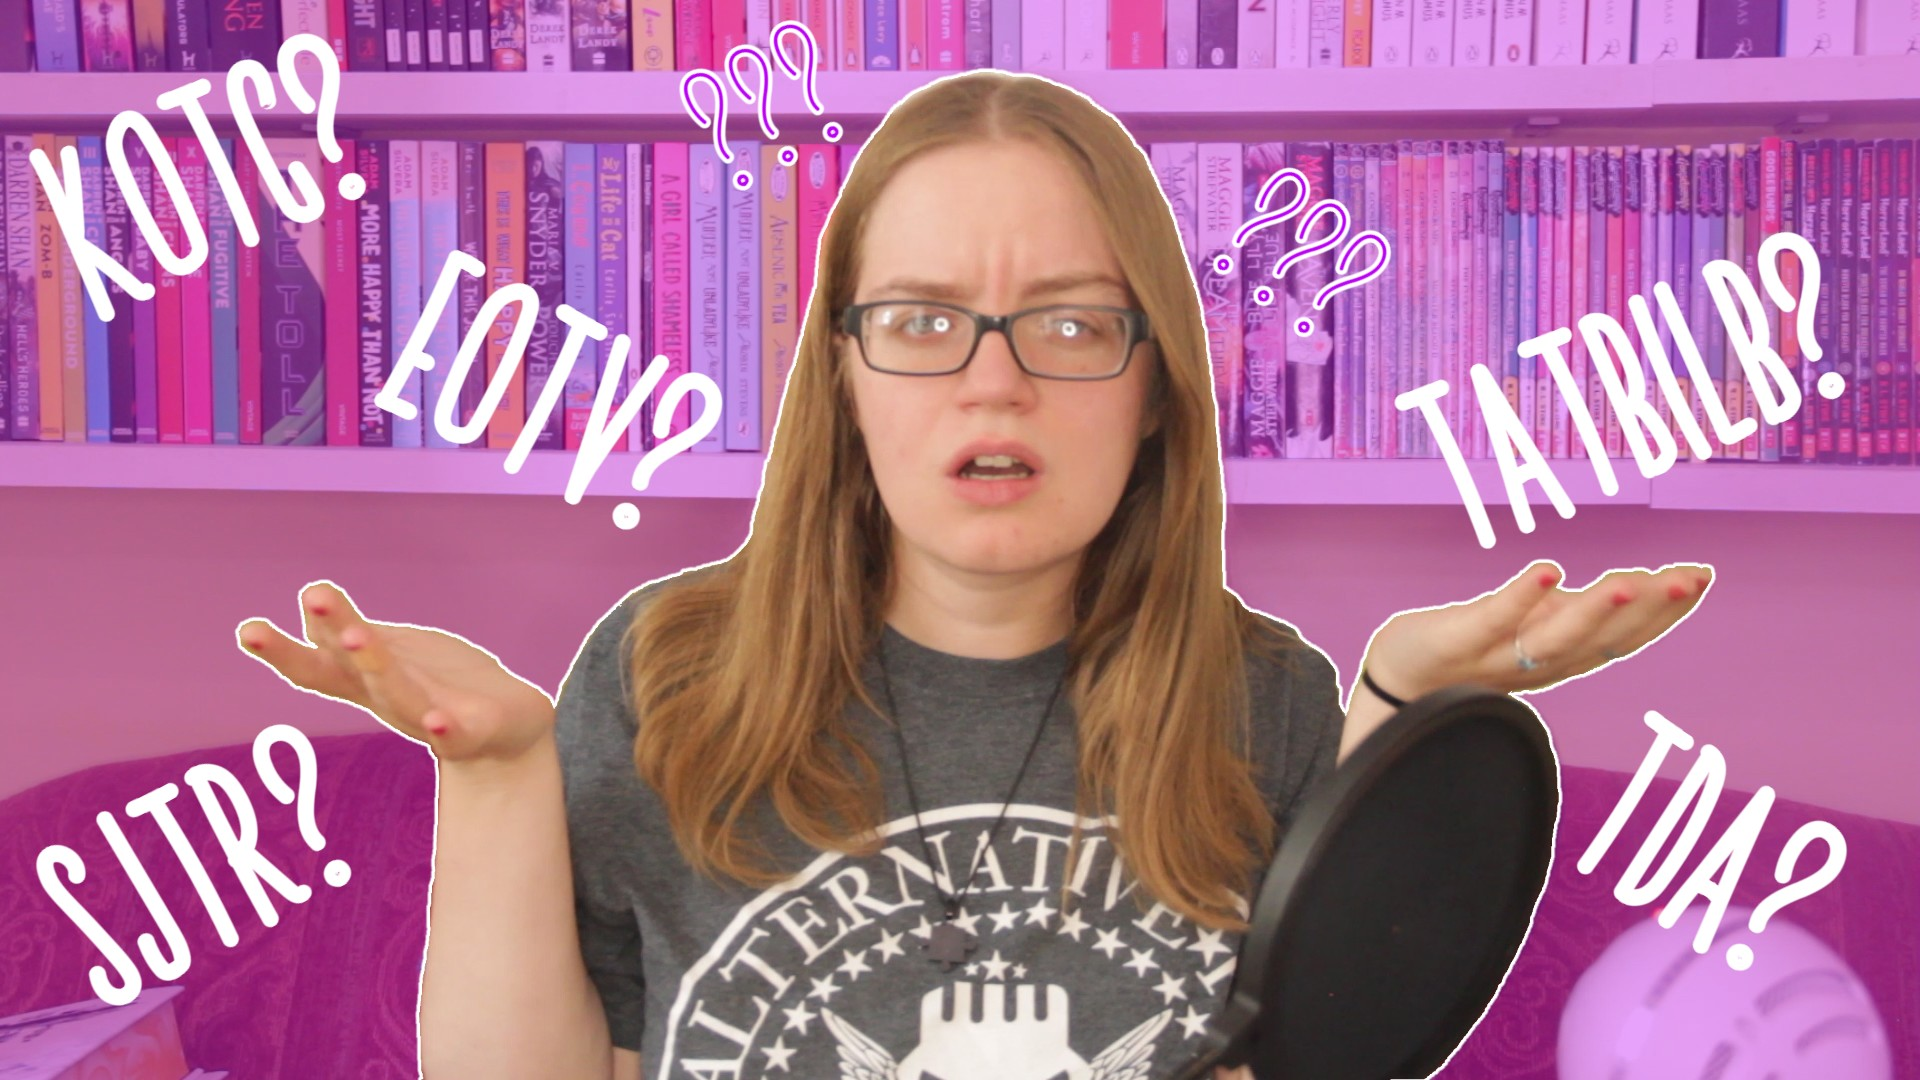 Guide to Bookish Acronyms